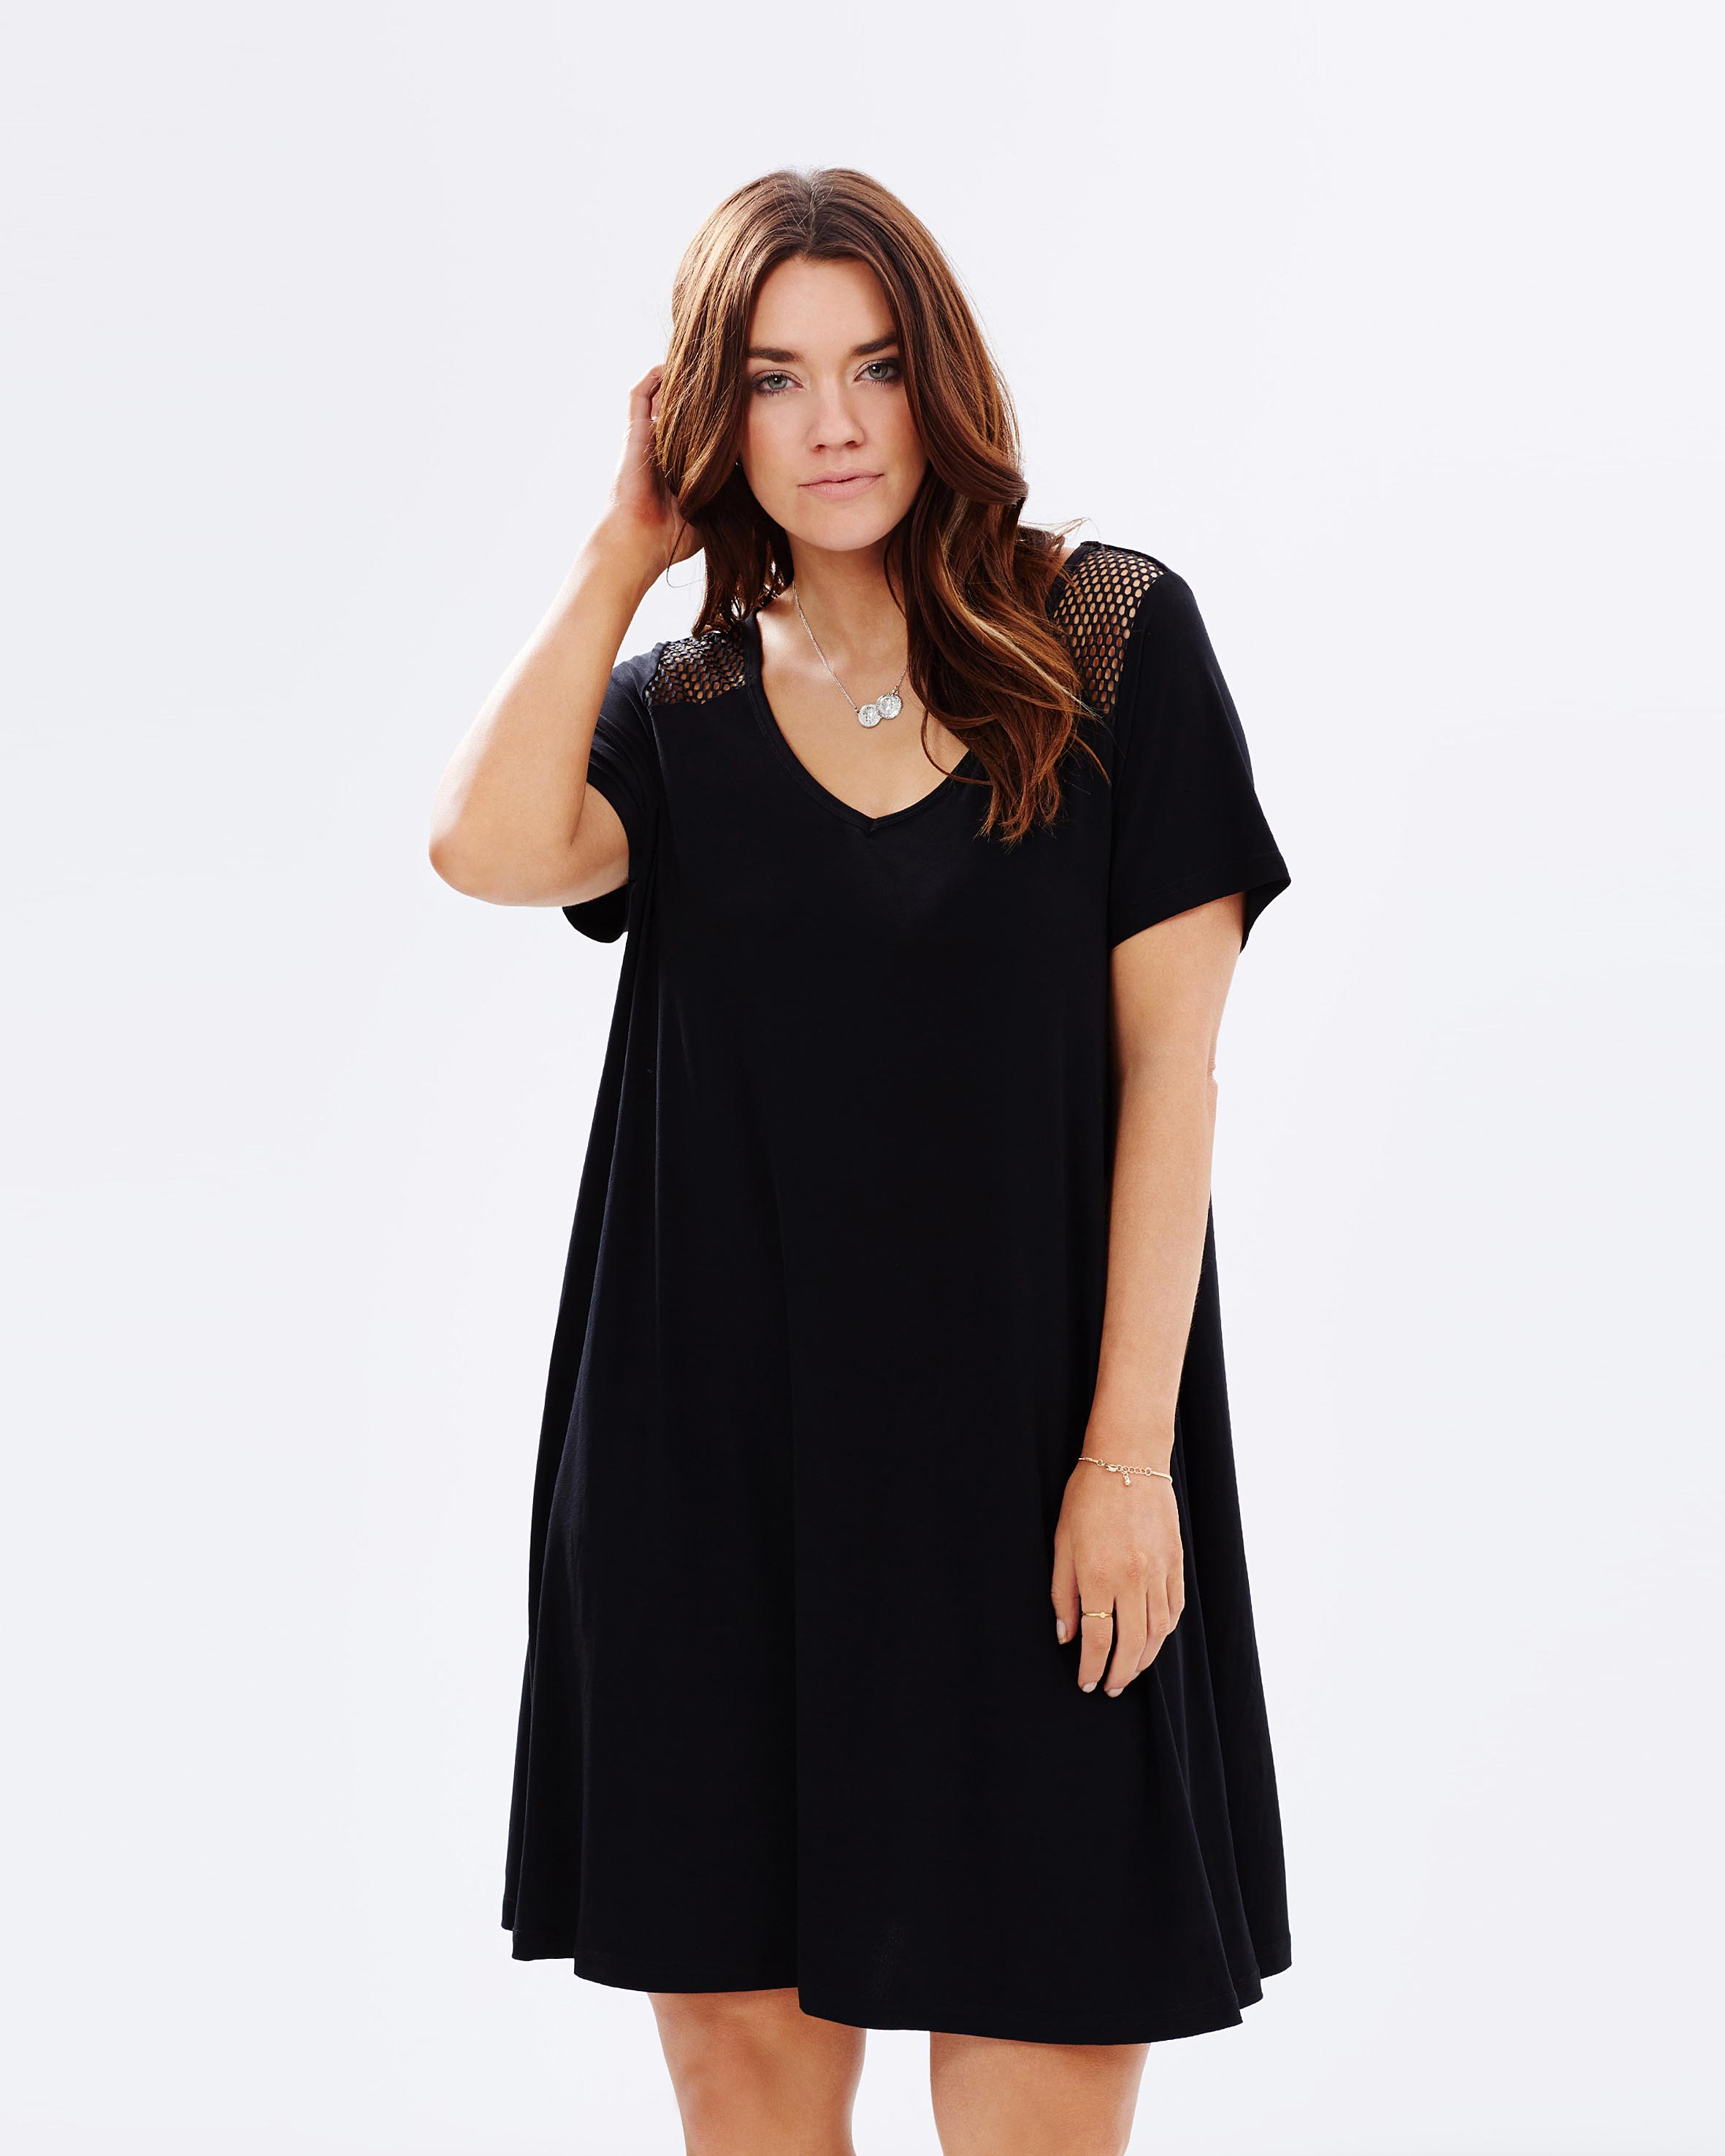 Women's Plus Size Clothing. If you're looking for plus size fashion that's stylish and on trend, Westfield has an incredible range of exceptional clothing options to suit style savvy women with curves.